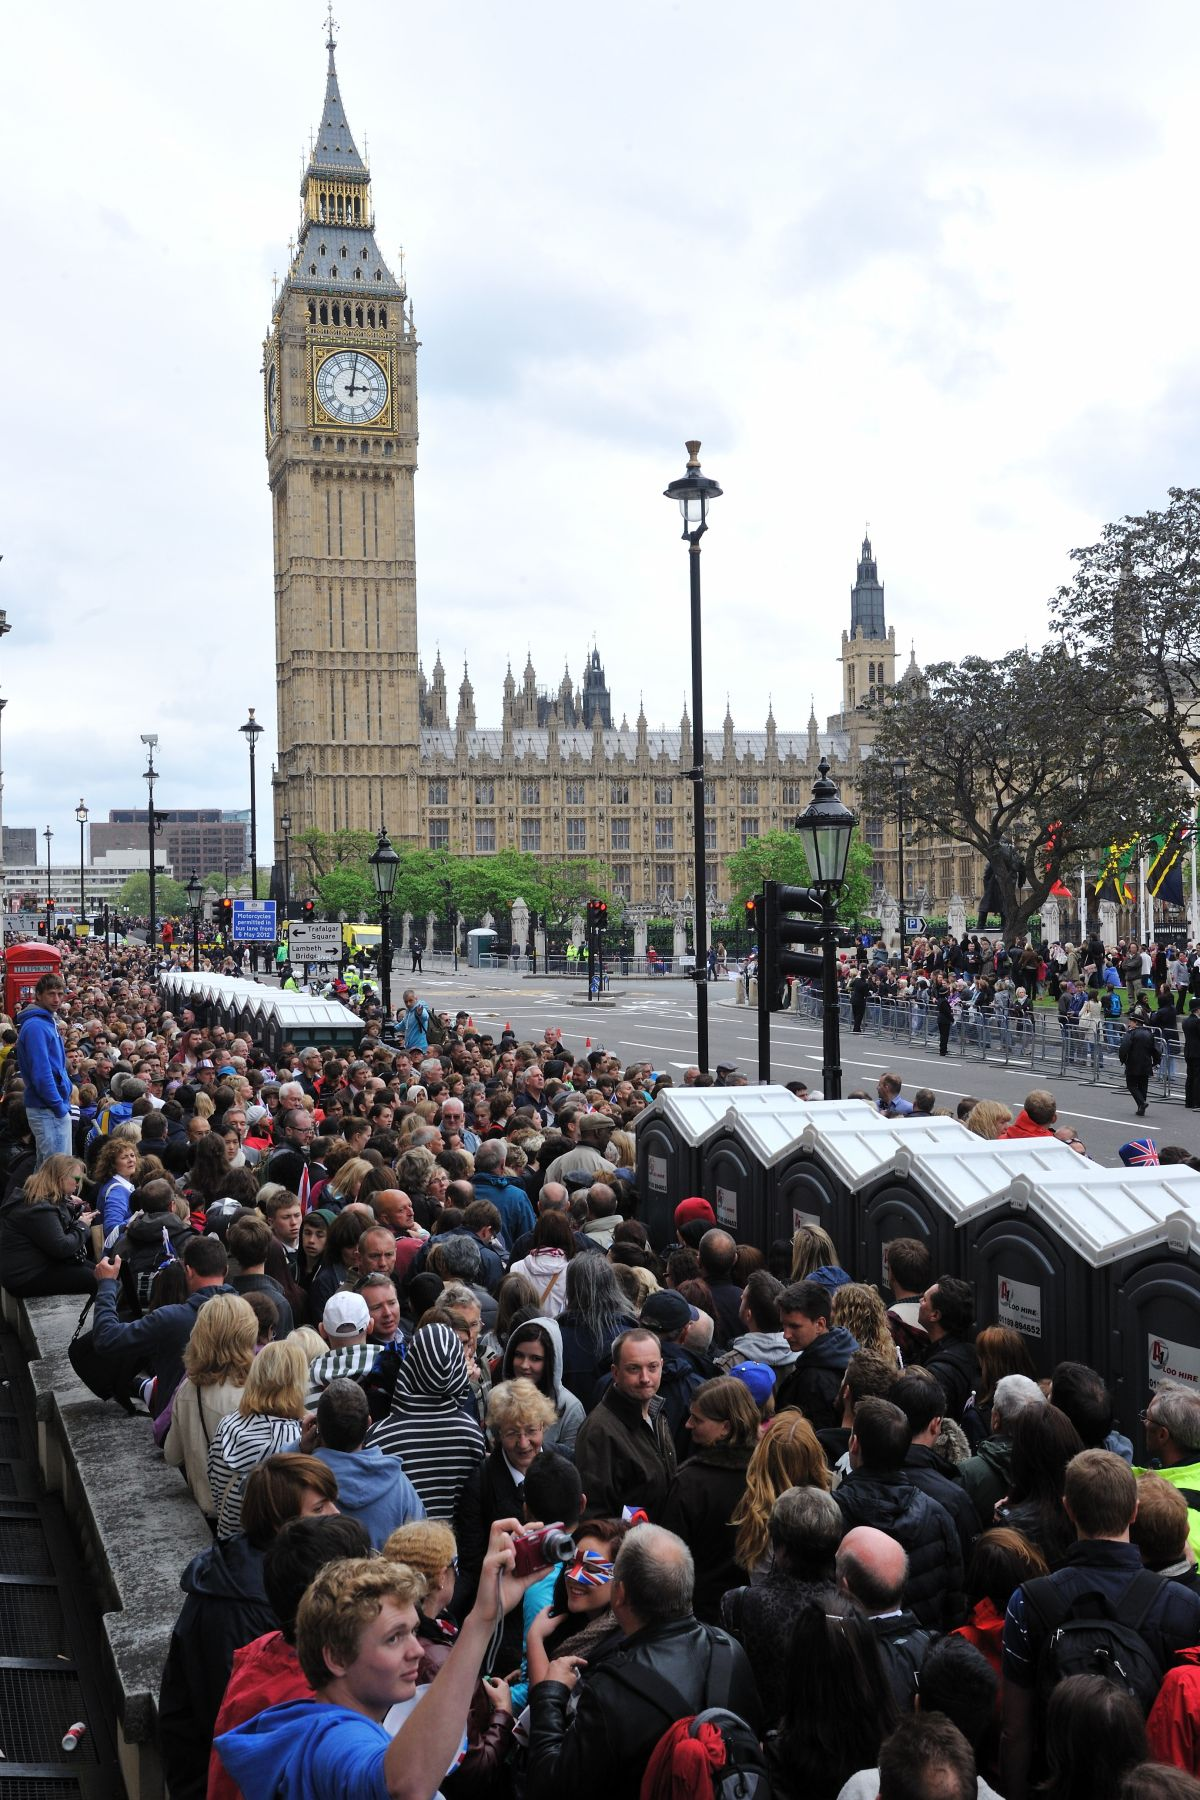 Crowds gathered on each sides of streets of downtown London, eager to see the Royal Family Carriage Procession.